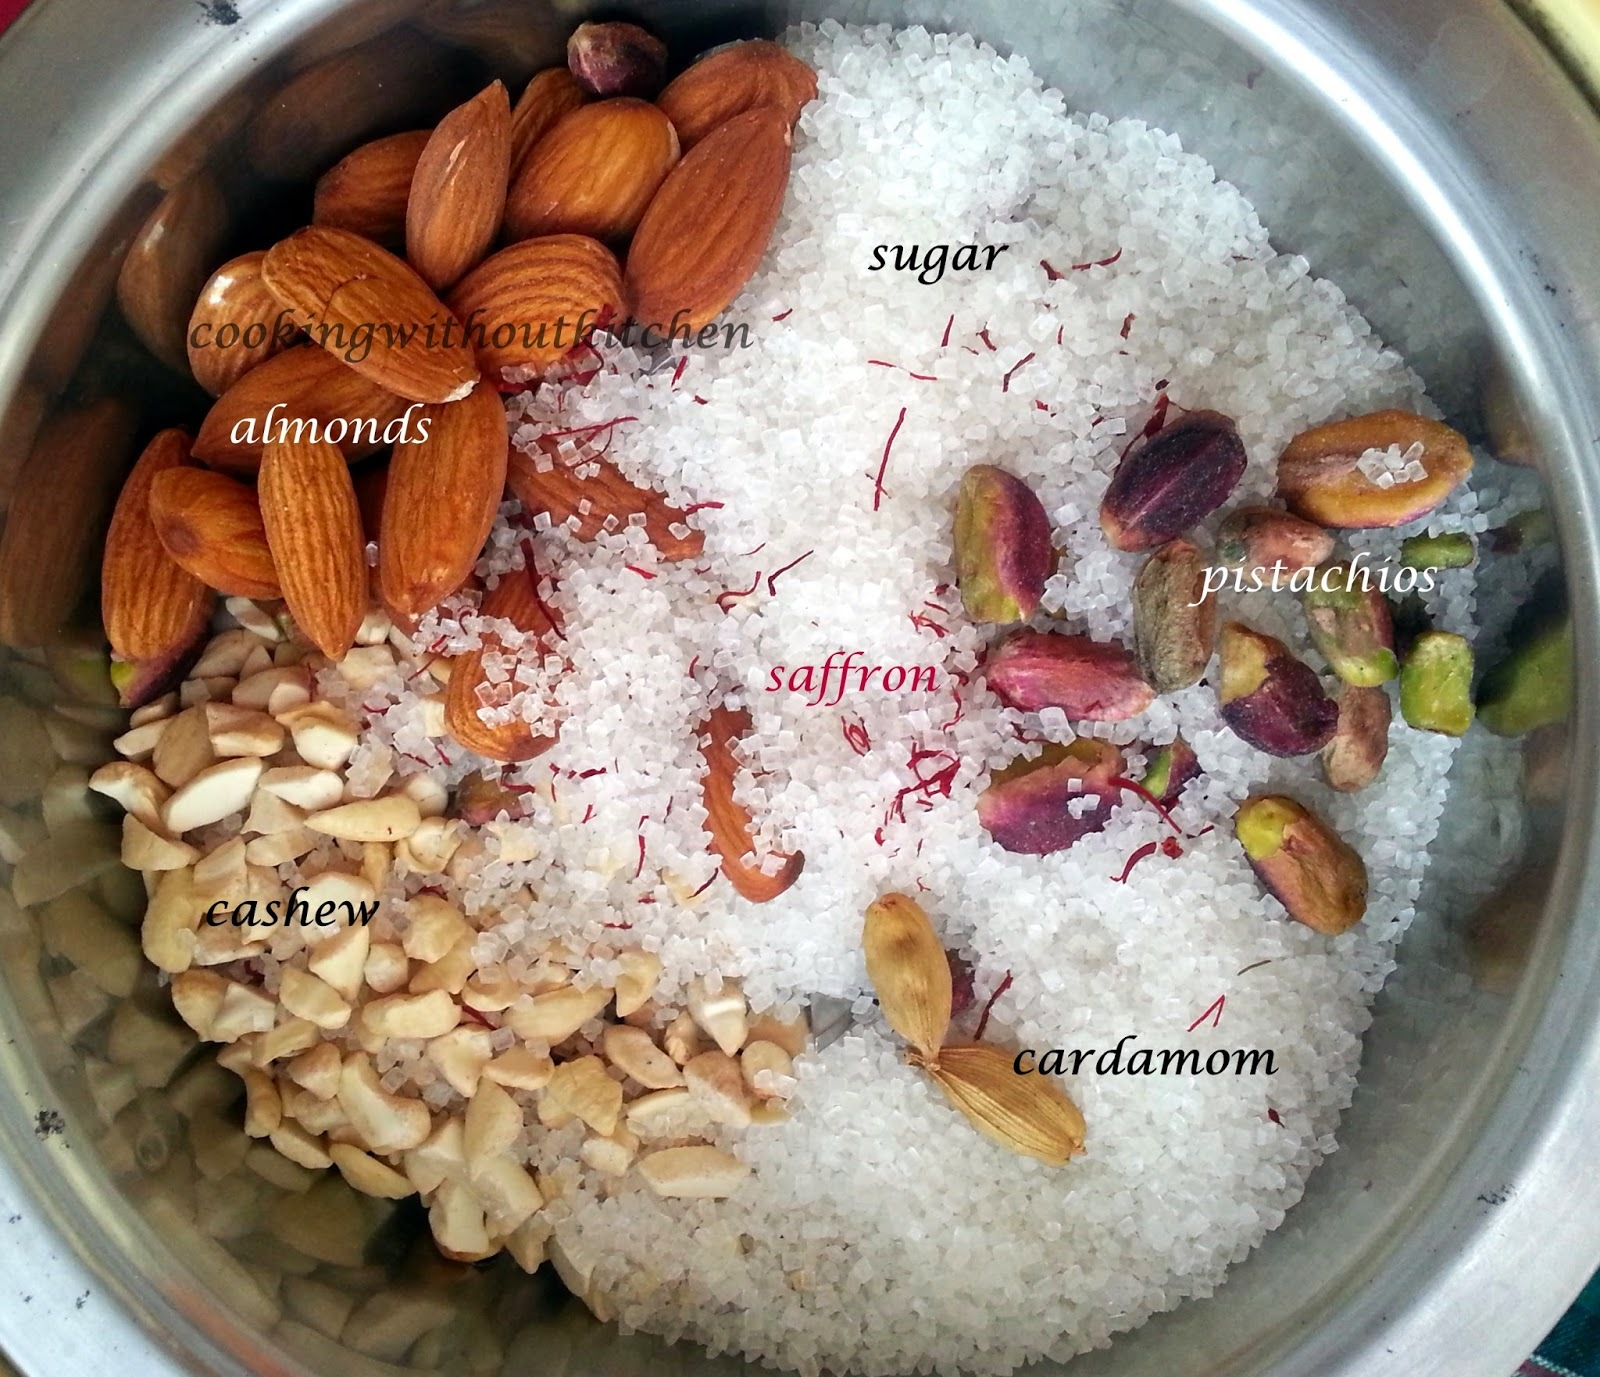 Instant milk masala or Indian dessert topping